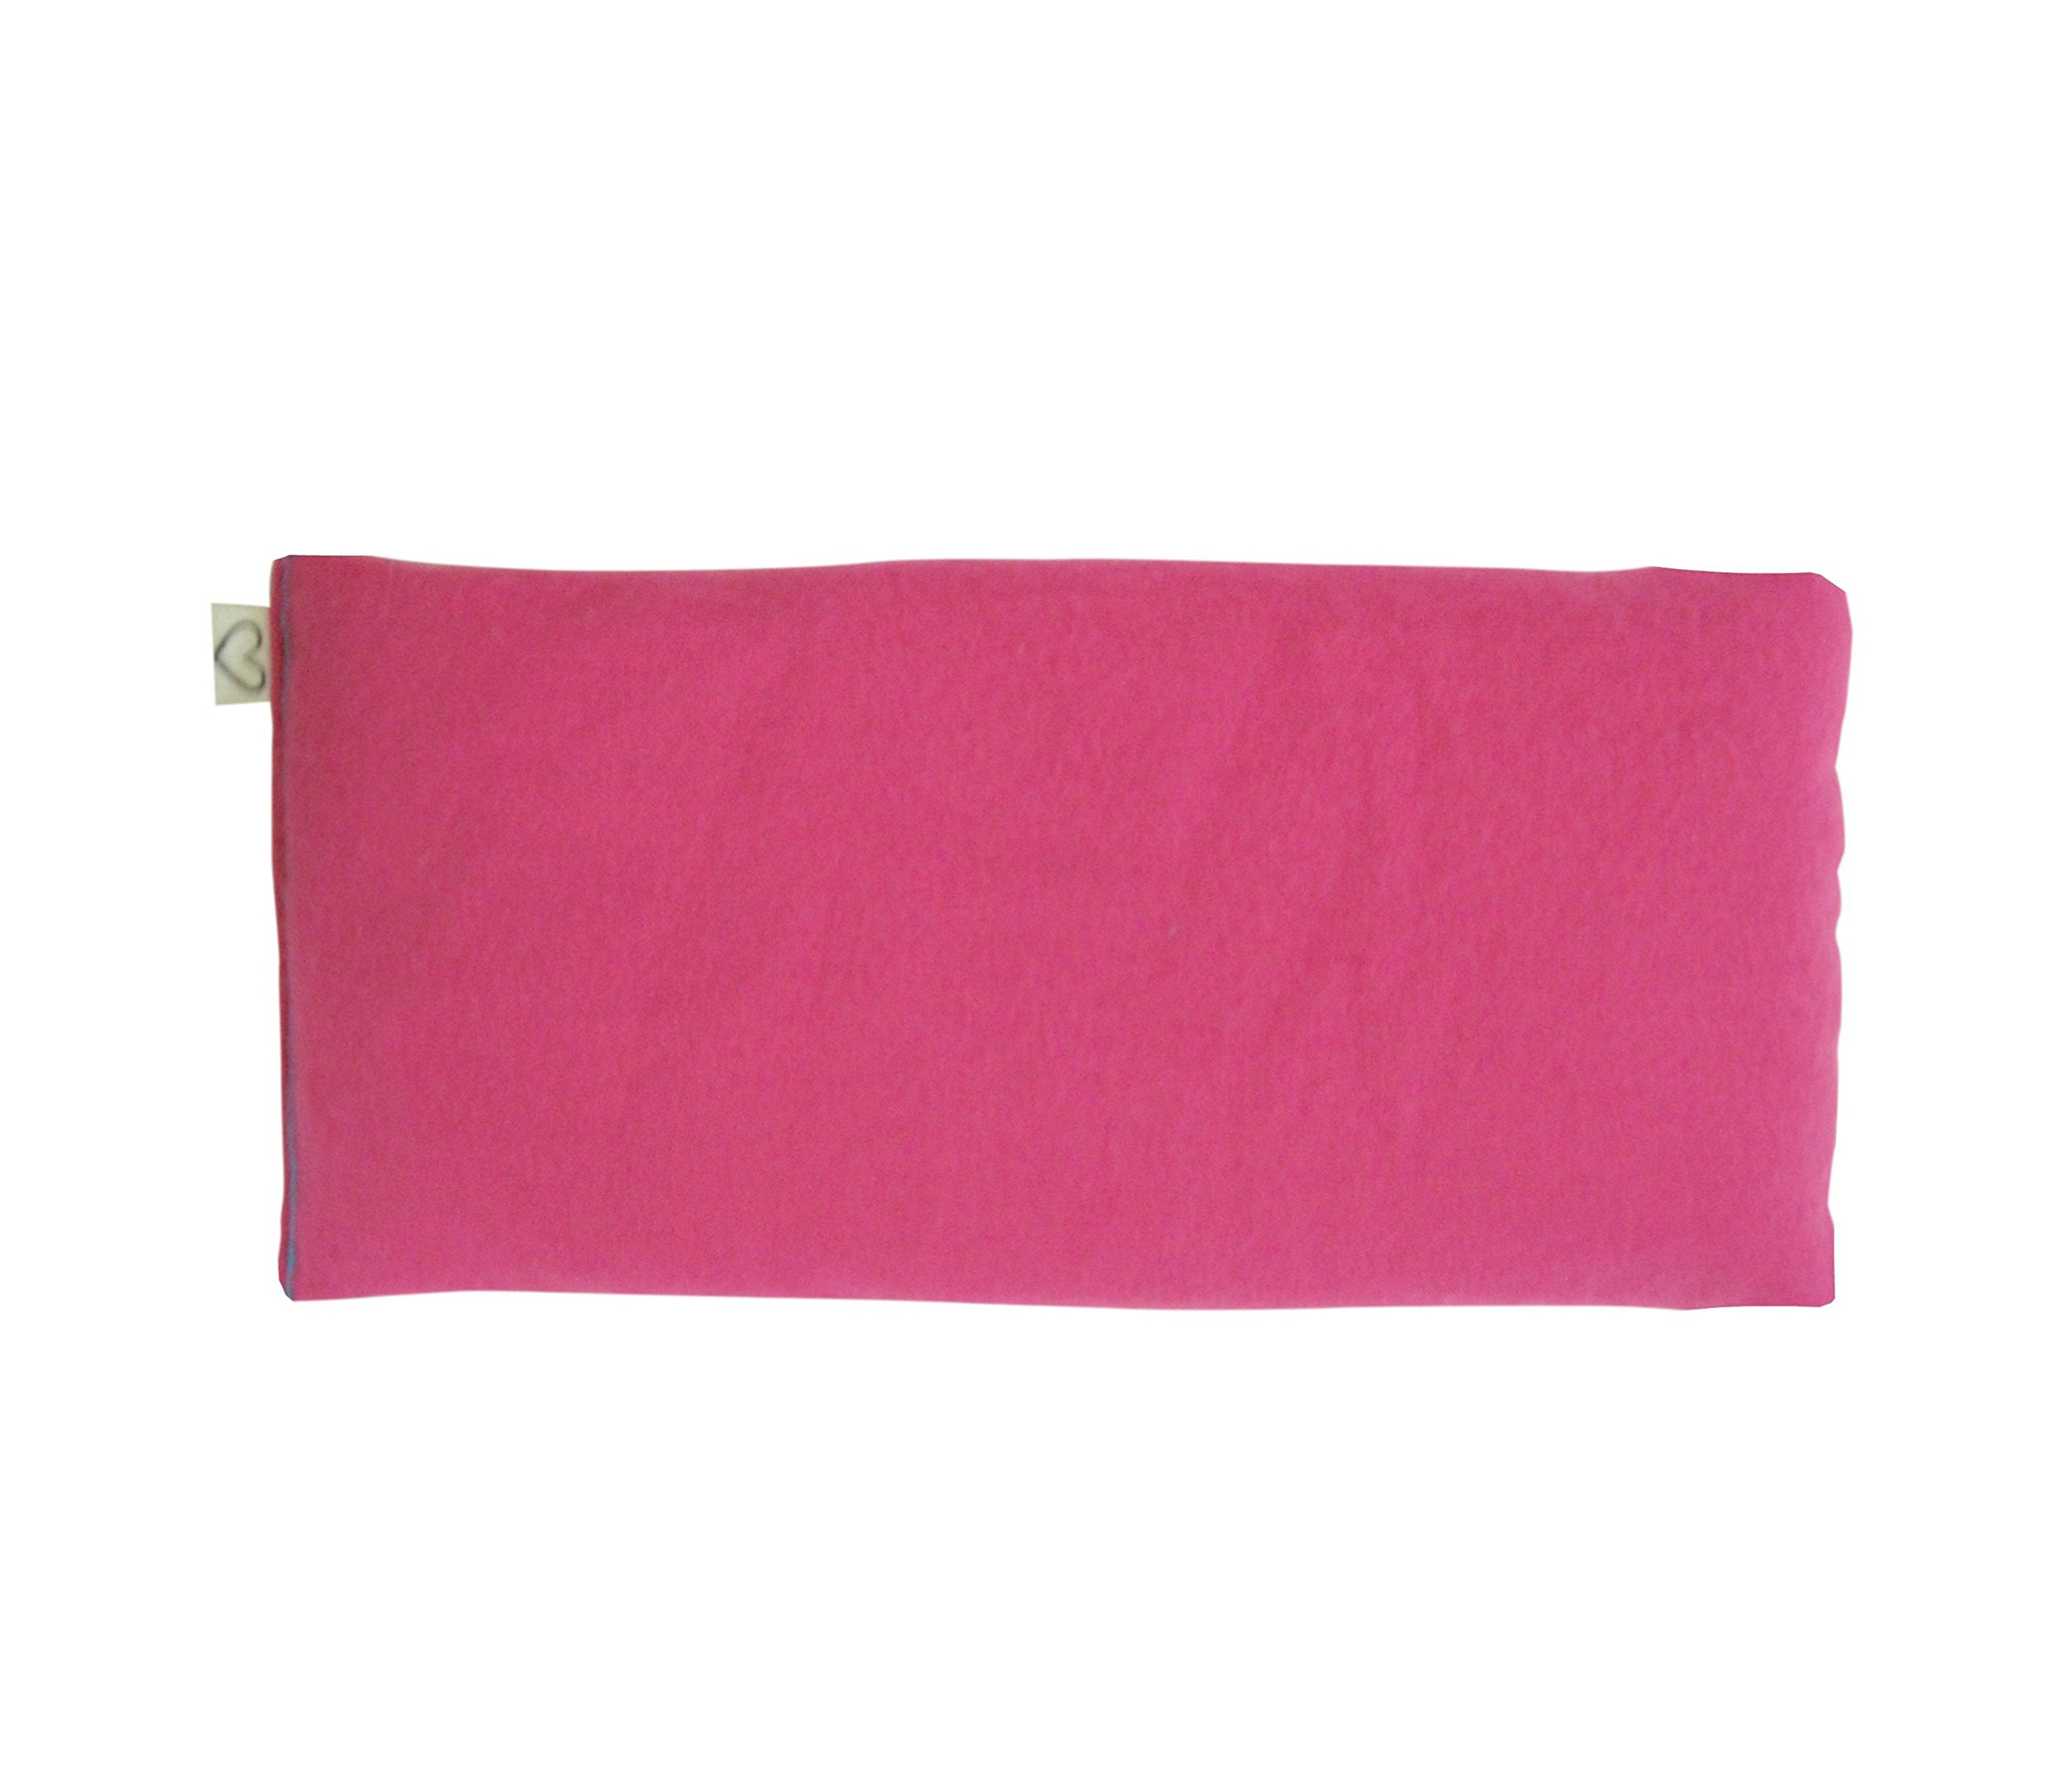 Peacegoods Unscented Organic Flax Seed Eye Pillow - Pack of (6) - Soft Cotton Flannel 4 x 8.5 - Pink Green Purple Gray Fuschia Aqua Turquoise Blue by Peacegoods (Image #4)